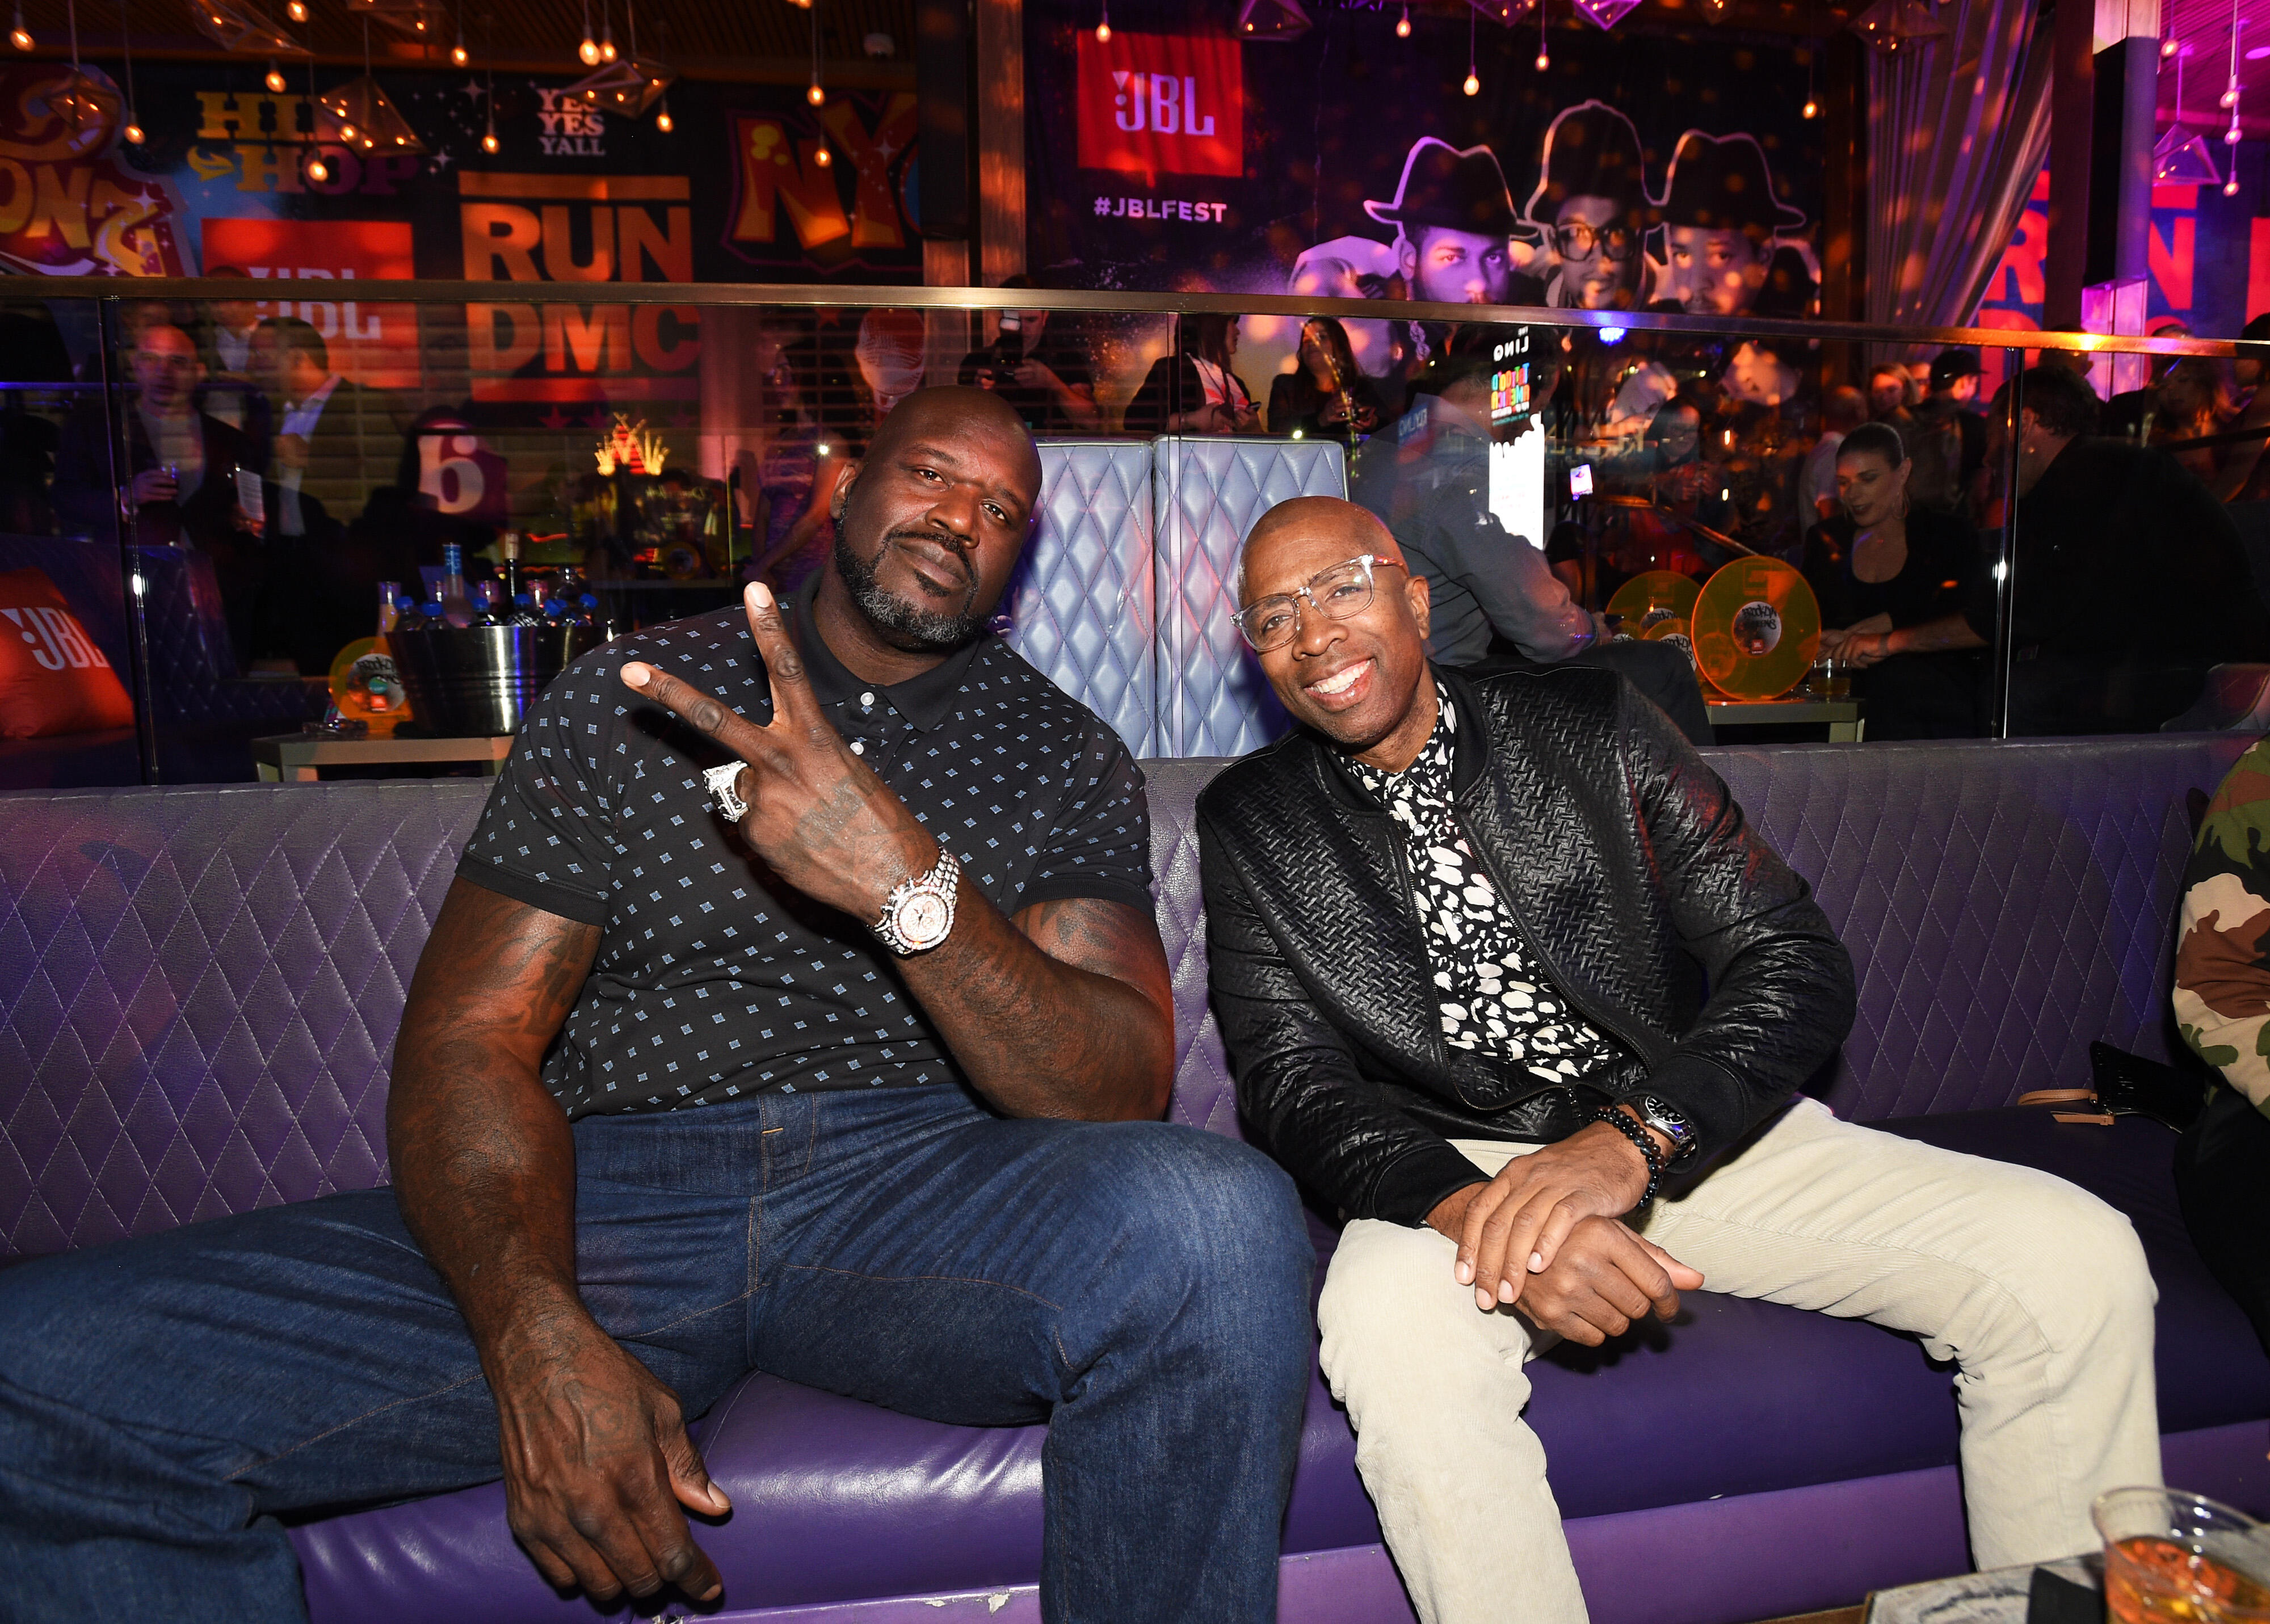 <p>Shaquille O'Neal, left, and Kenny Smith at JBL Fest. They are half of the hosting team from Inside the NBA.</p>